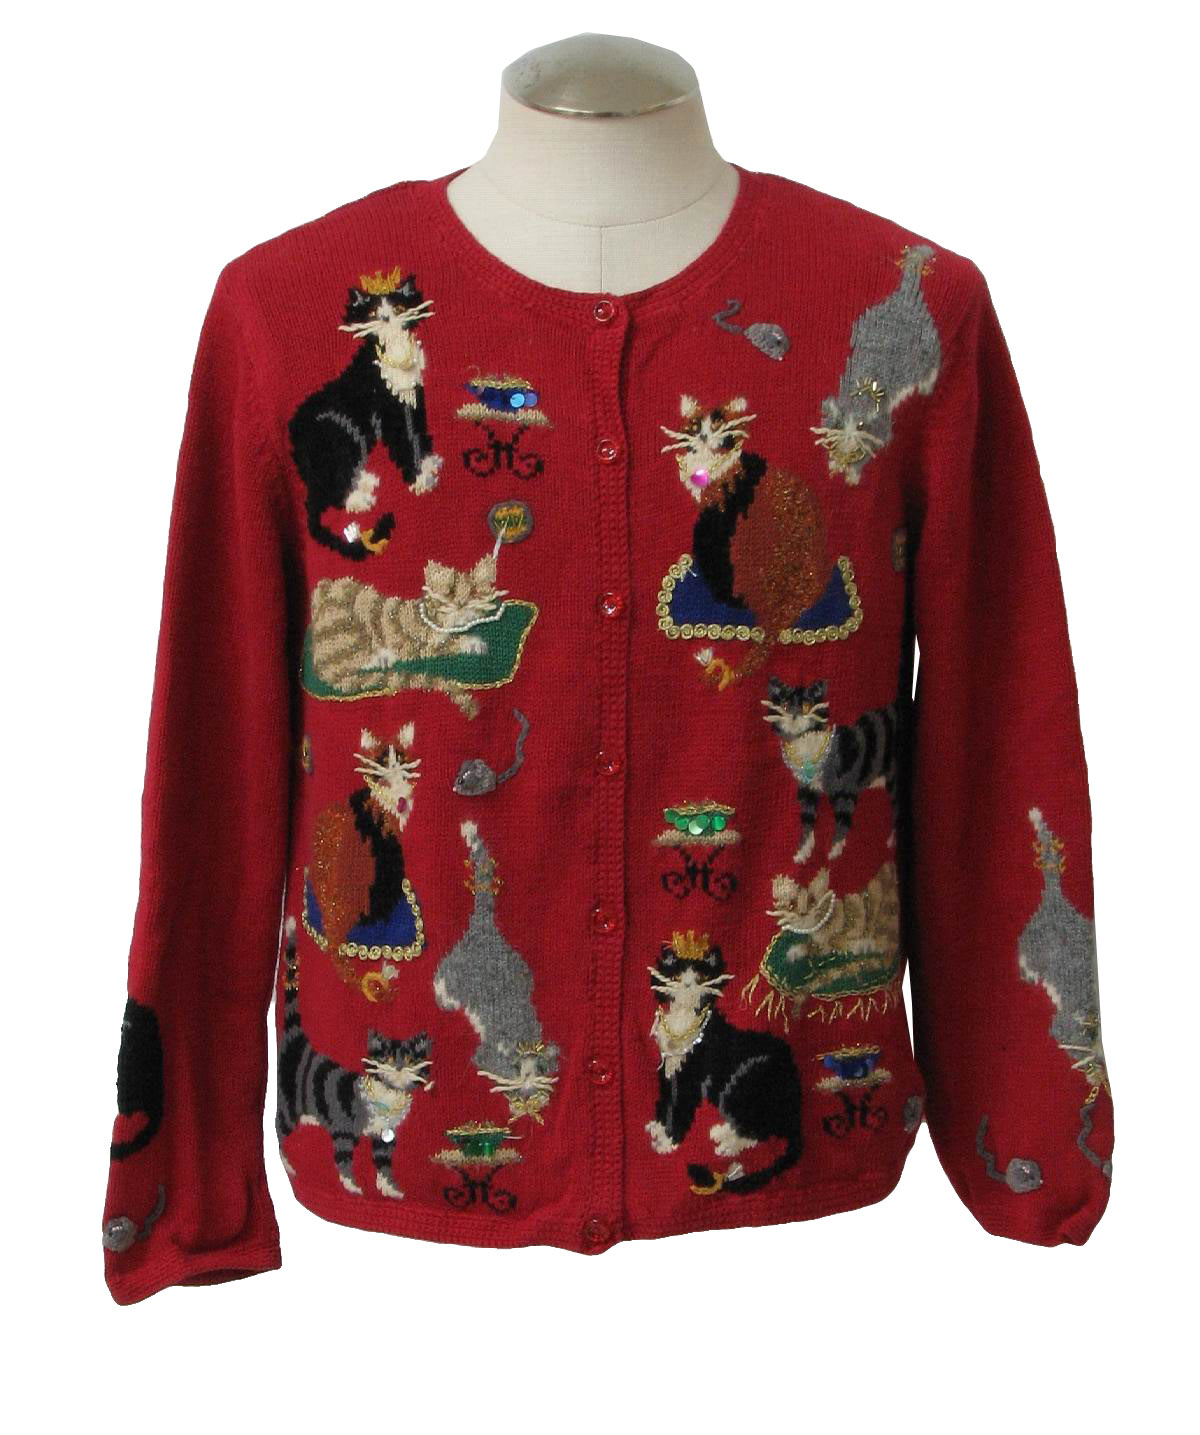 Cheap Ugly Christmas Sweater with Cat